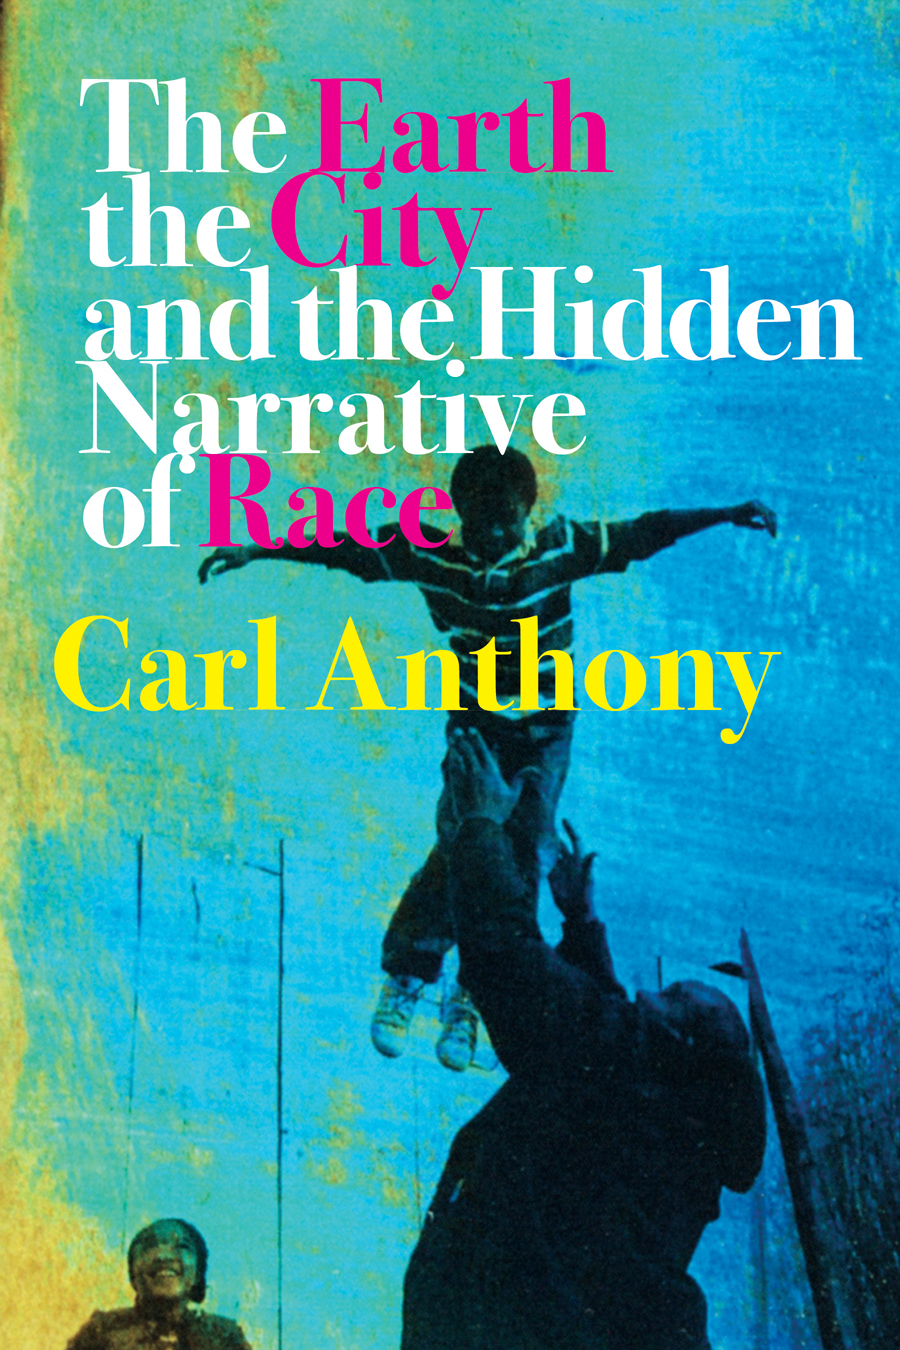 Front cover of The Earth, the City, and the Hidden Narrative of Race, by Carl Anthony